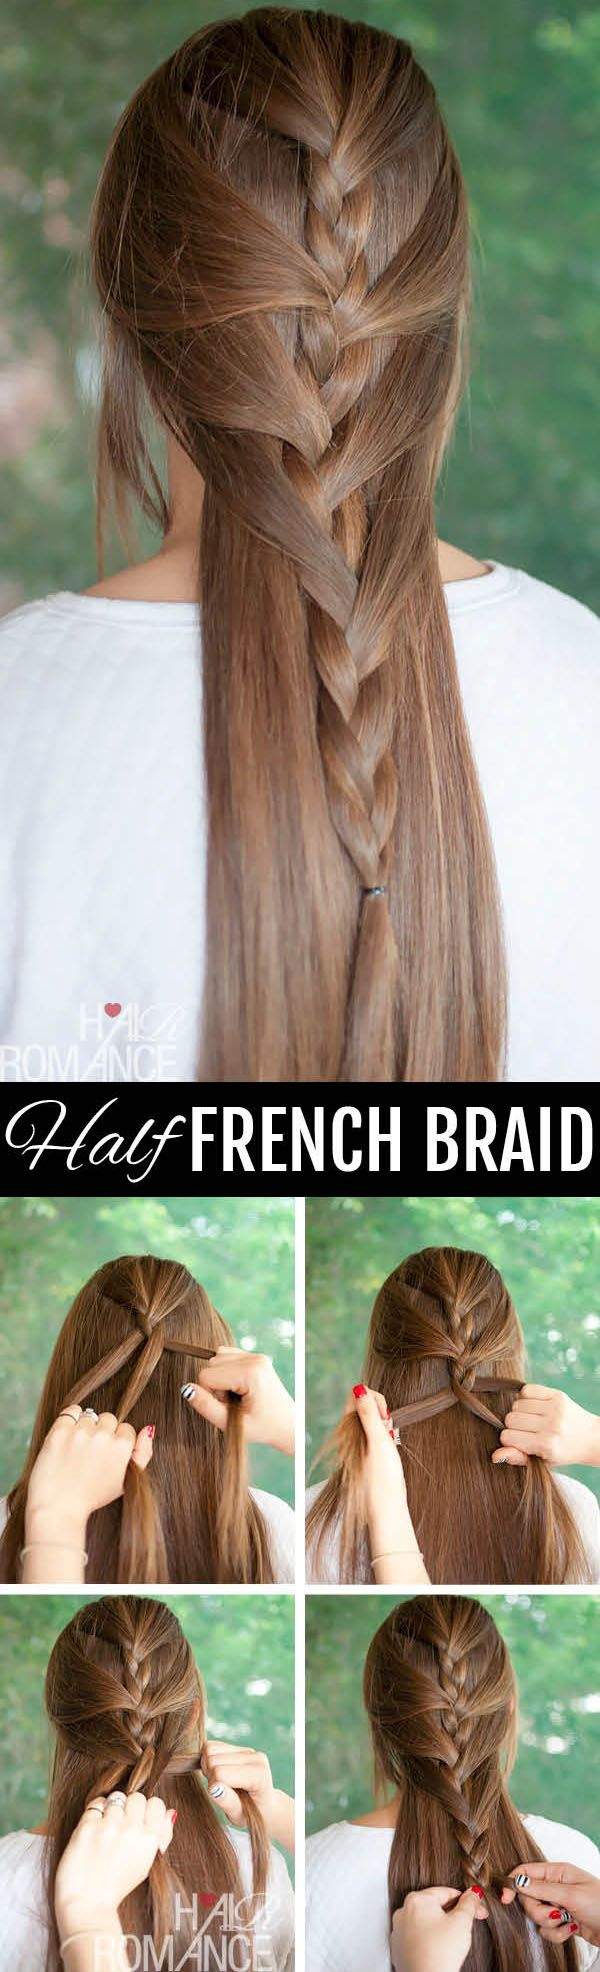 Half French braid....